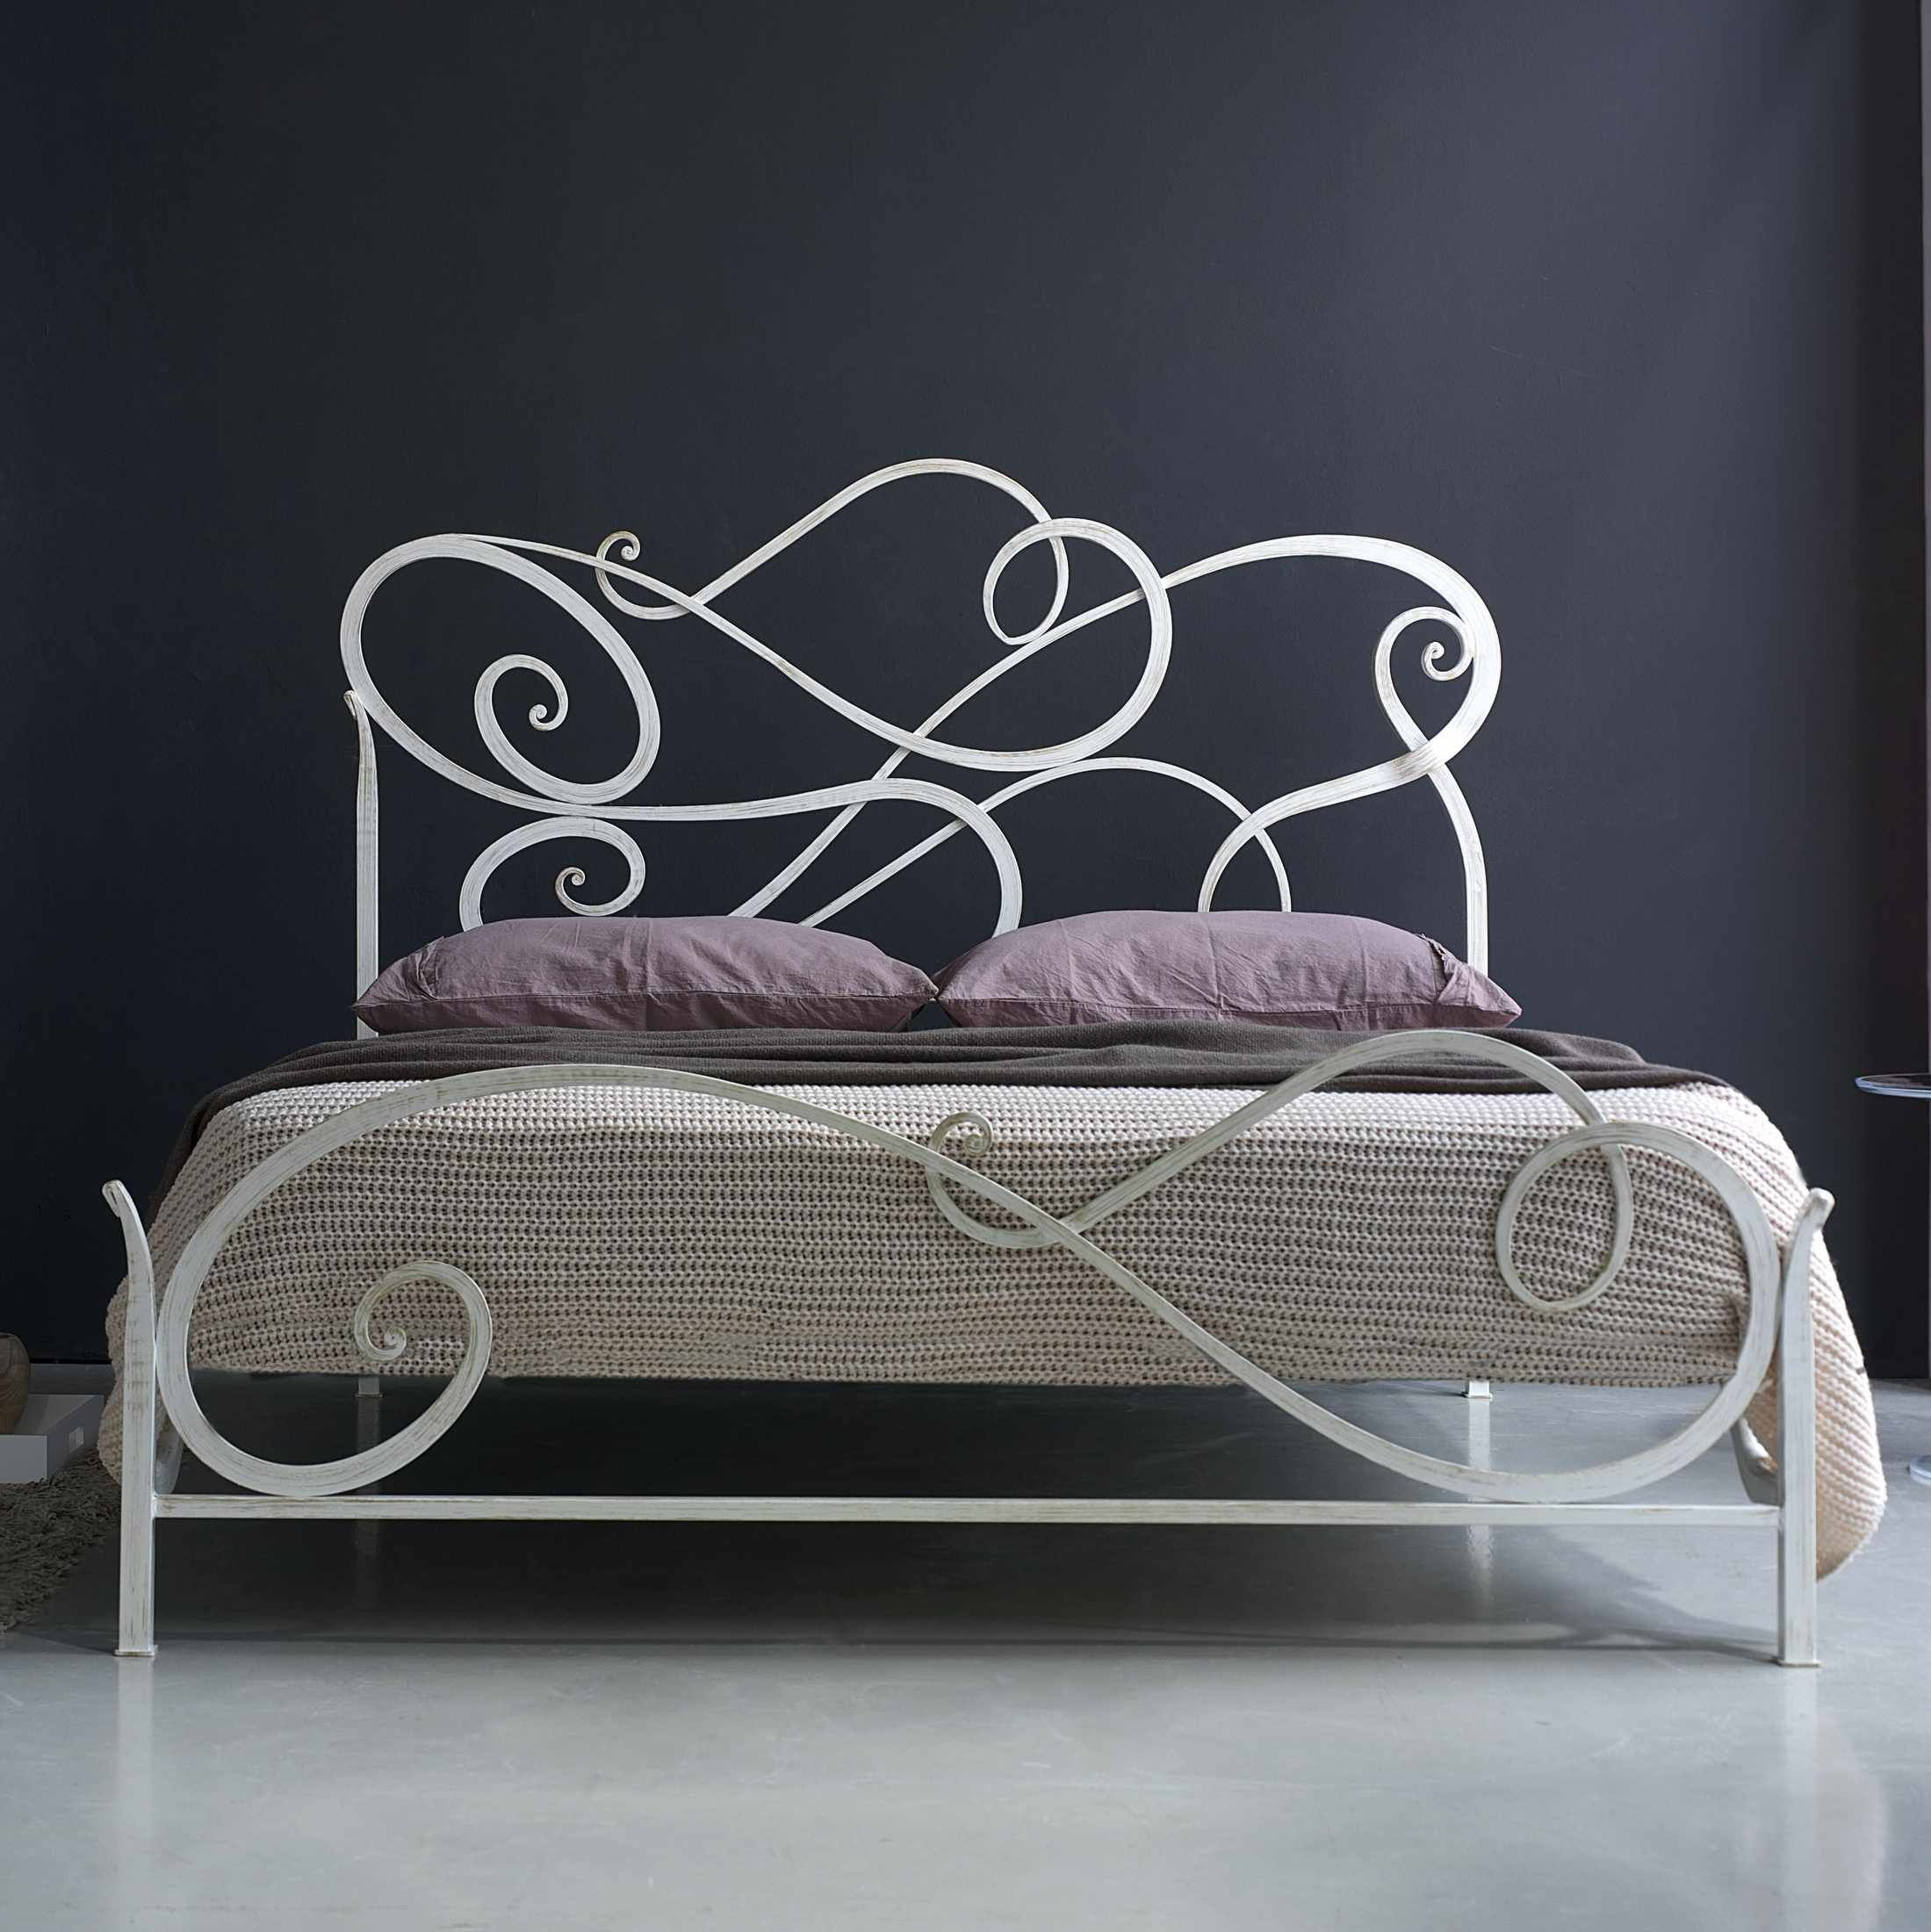 White iron bed king - Modern White Cosatto Auran Wrought Iron Bed Design Feature Unique Shaped Headboard And Footboard Plus Four